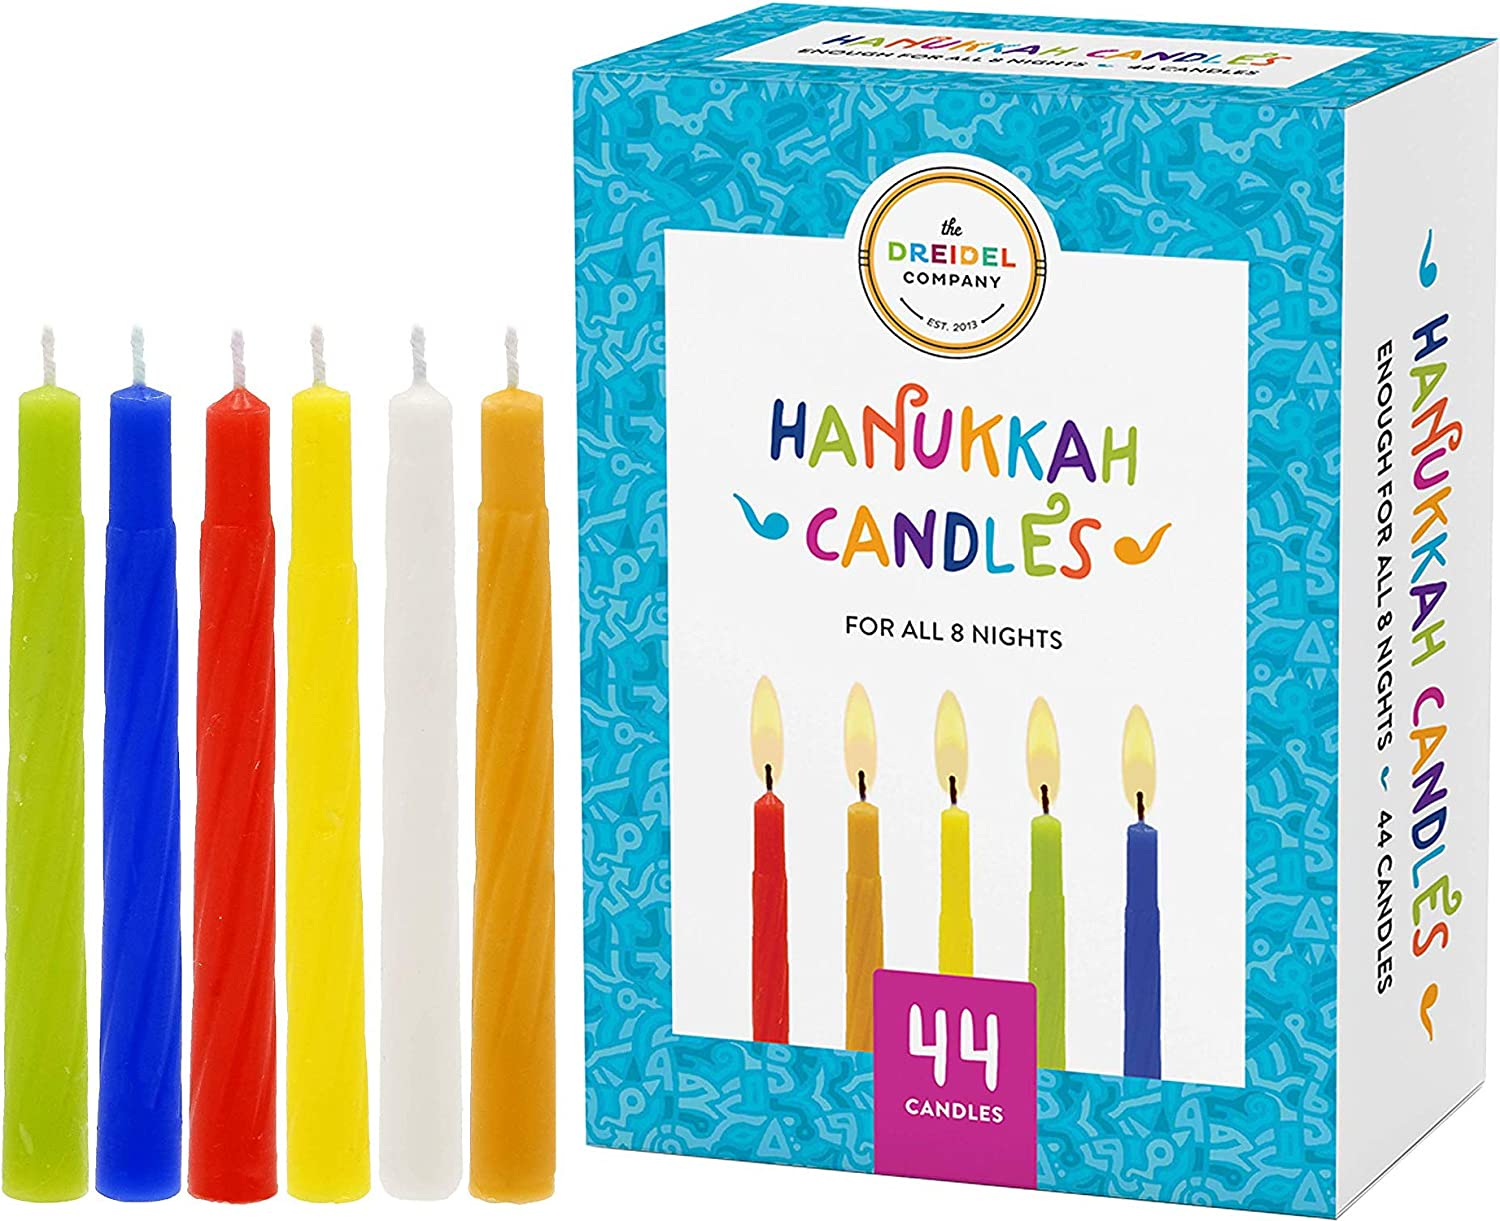 The Dreidel Company Menorah Candles Chanukah Candles 44 Colorful Hanukkah Candles for All 8 Nights of Chanukah (Single)